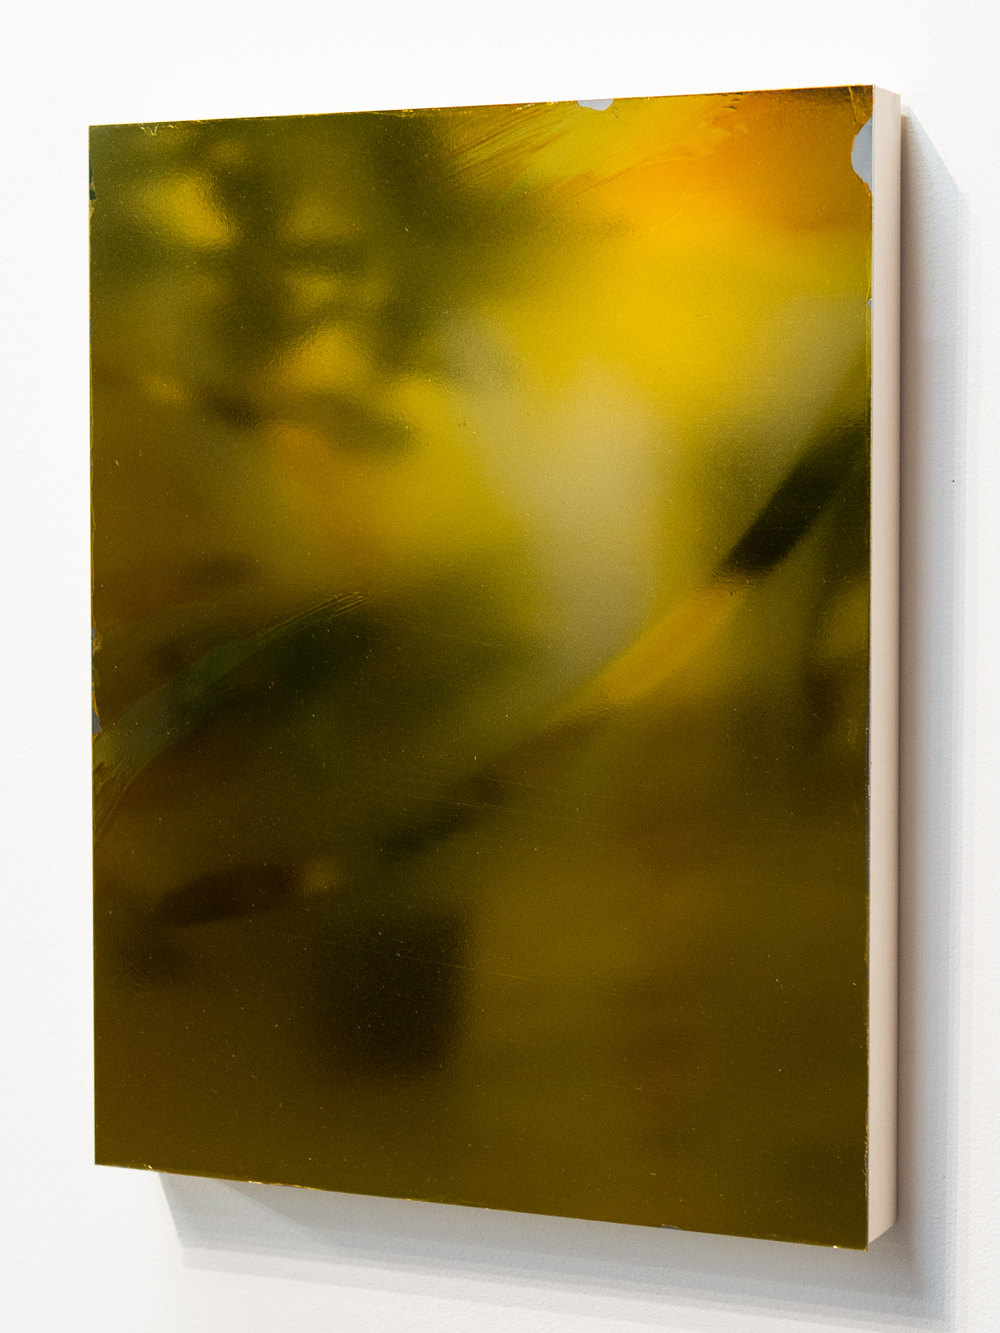 MLSL_11_Bunny  , 2015    Gold tint on stainless steel    18 x 14 in (45.72 x 35.56 cm)